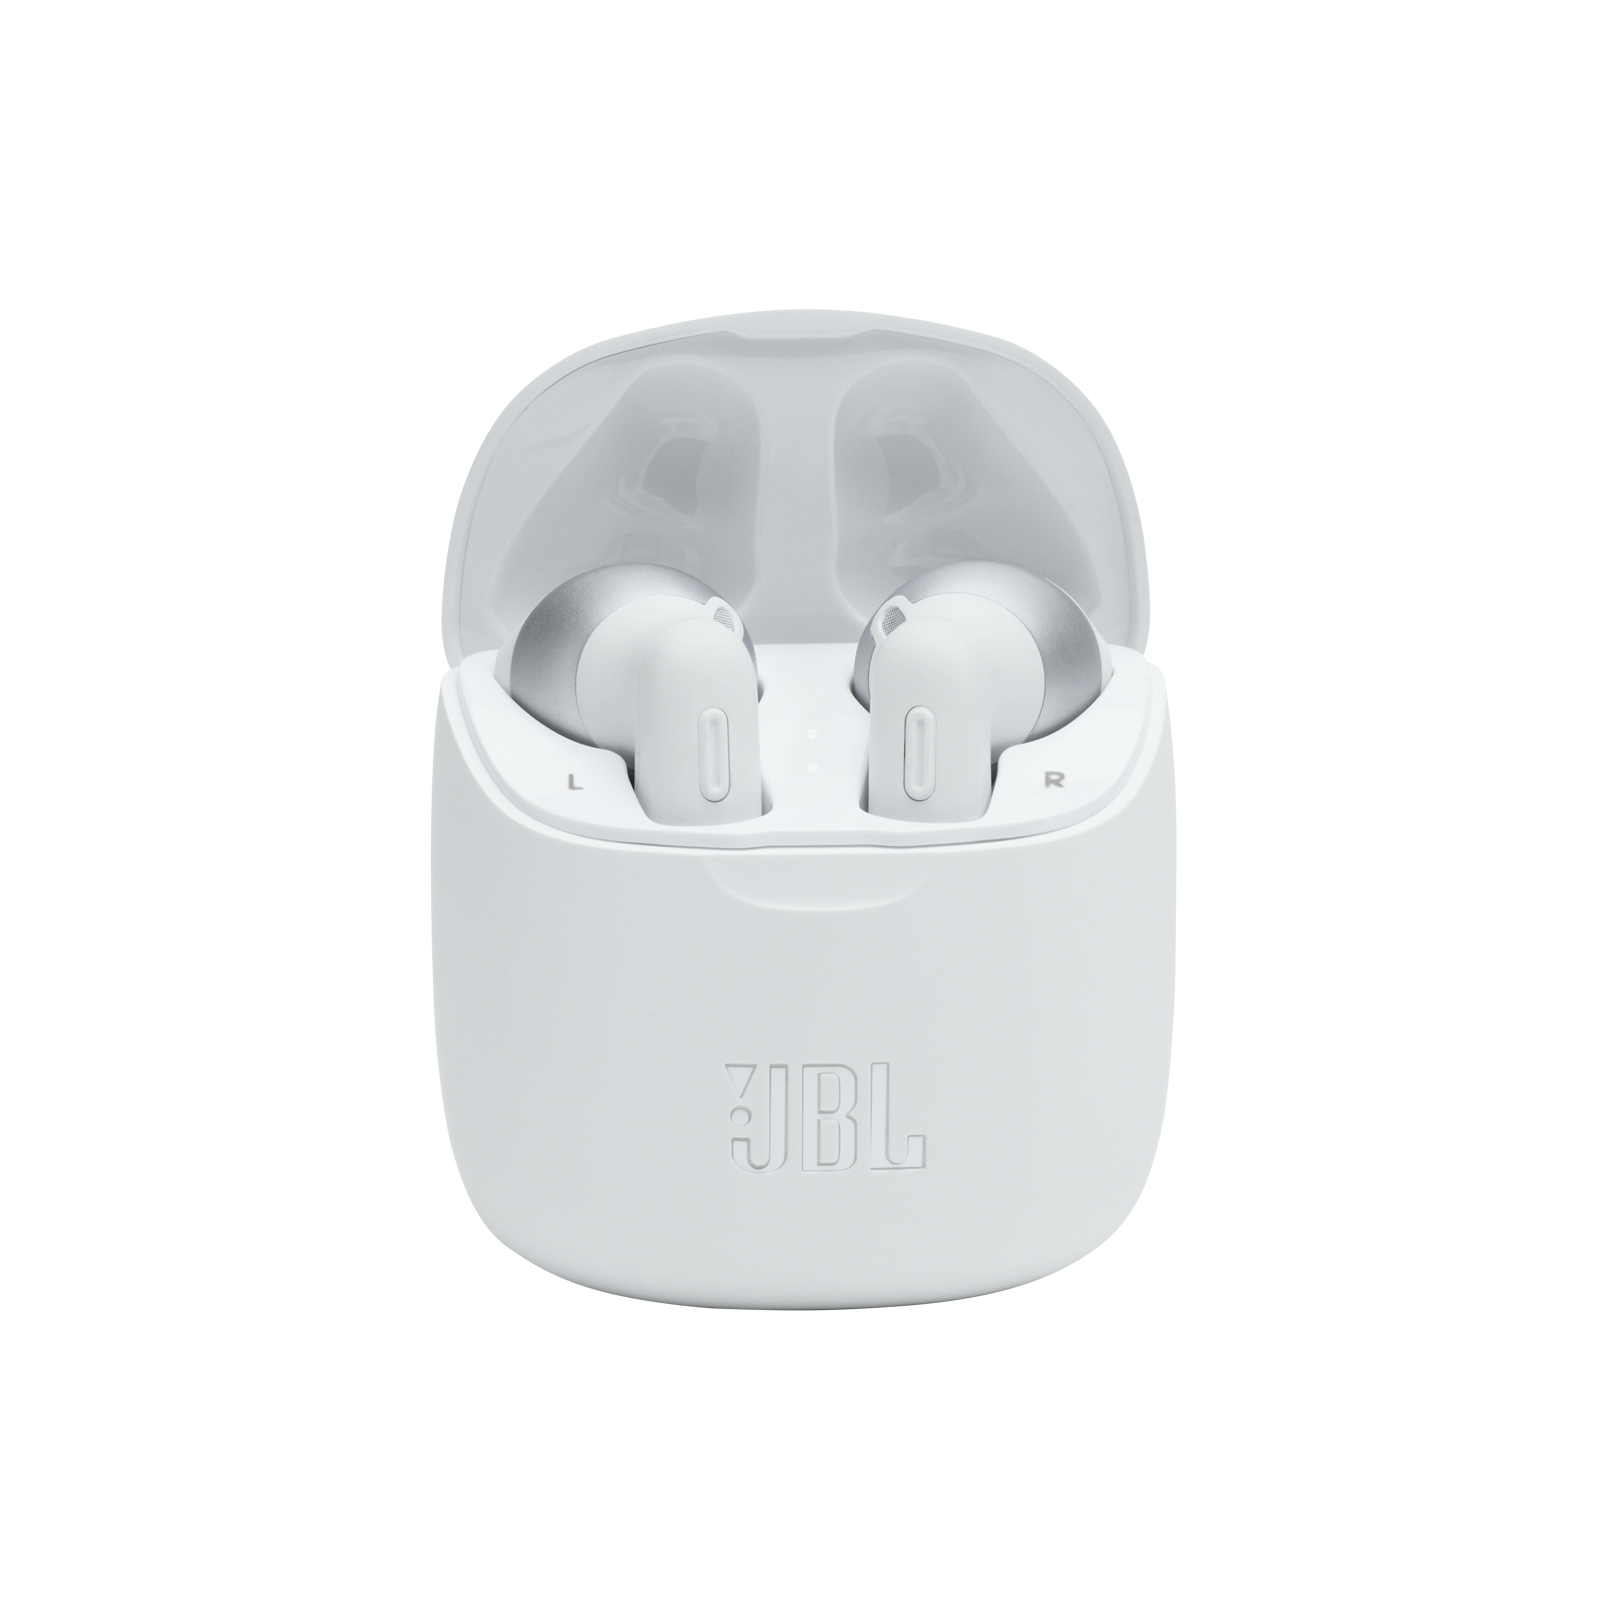 JBL TUNE 225TWS - White - True wireless earbud headphones - Detailshot 4